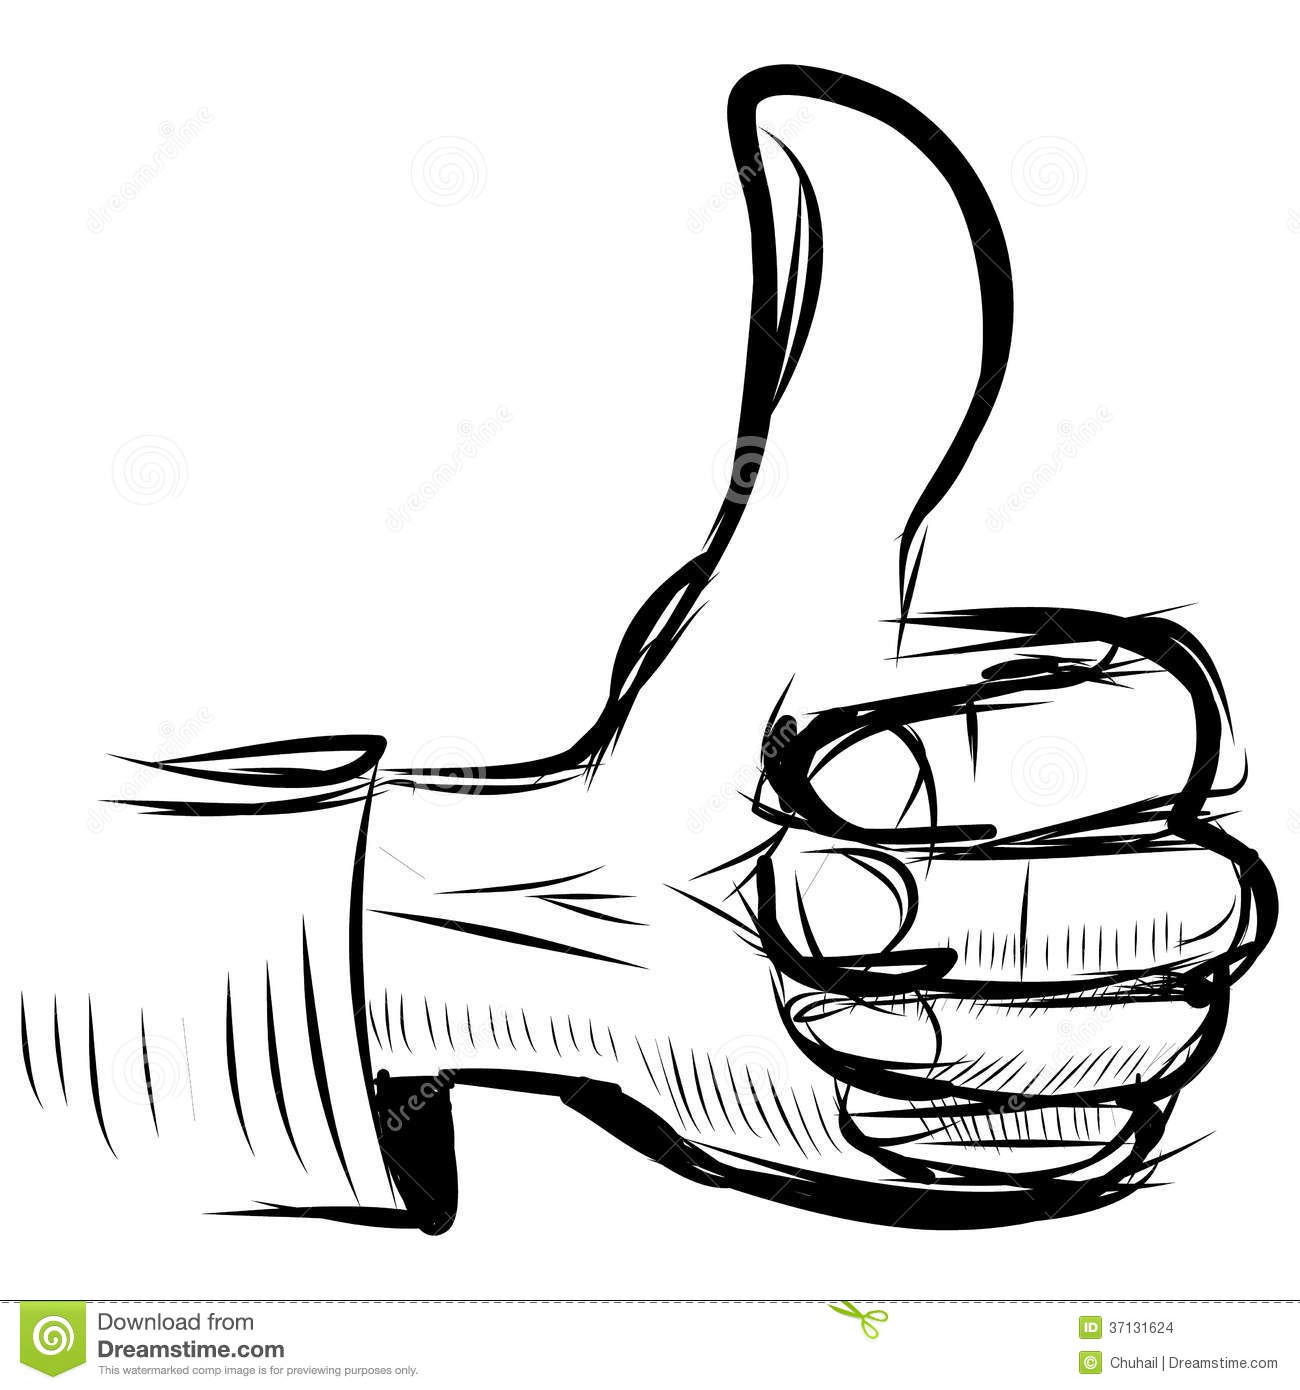 Thumb Up Like Hand Symbol Stock Images